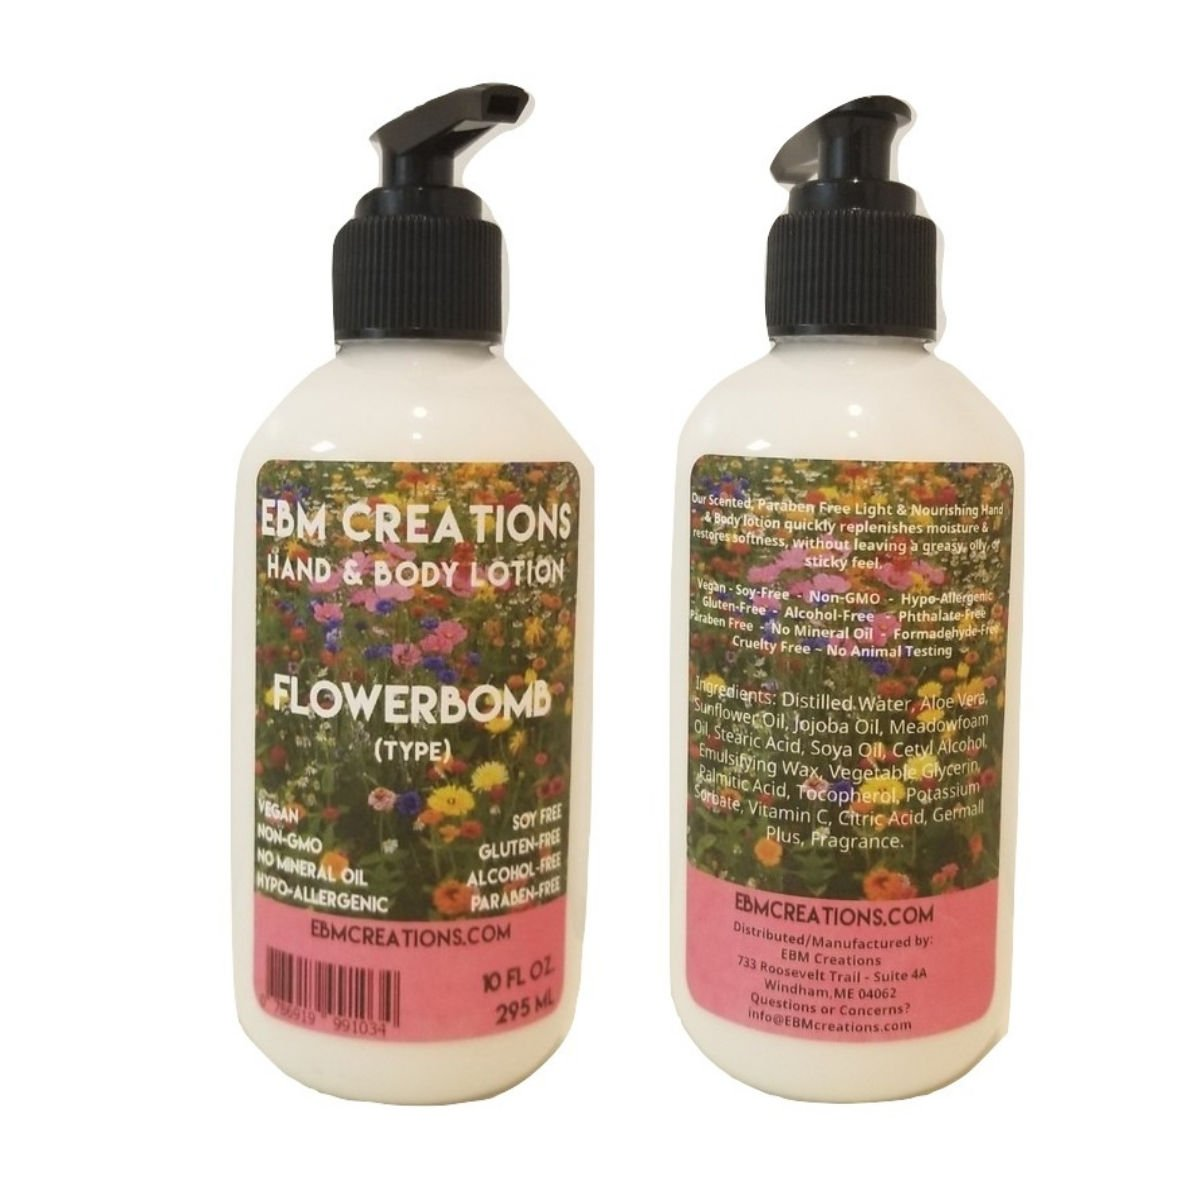 1-10oz Flowerbomb Type Hand & Body Lotion - Paraben Free!